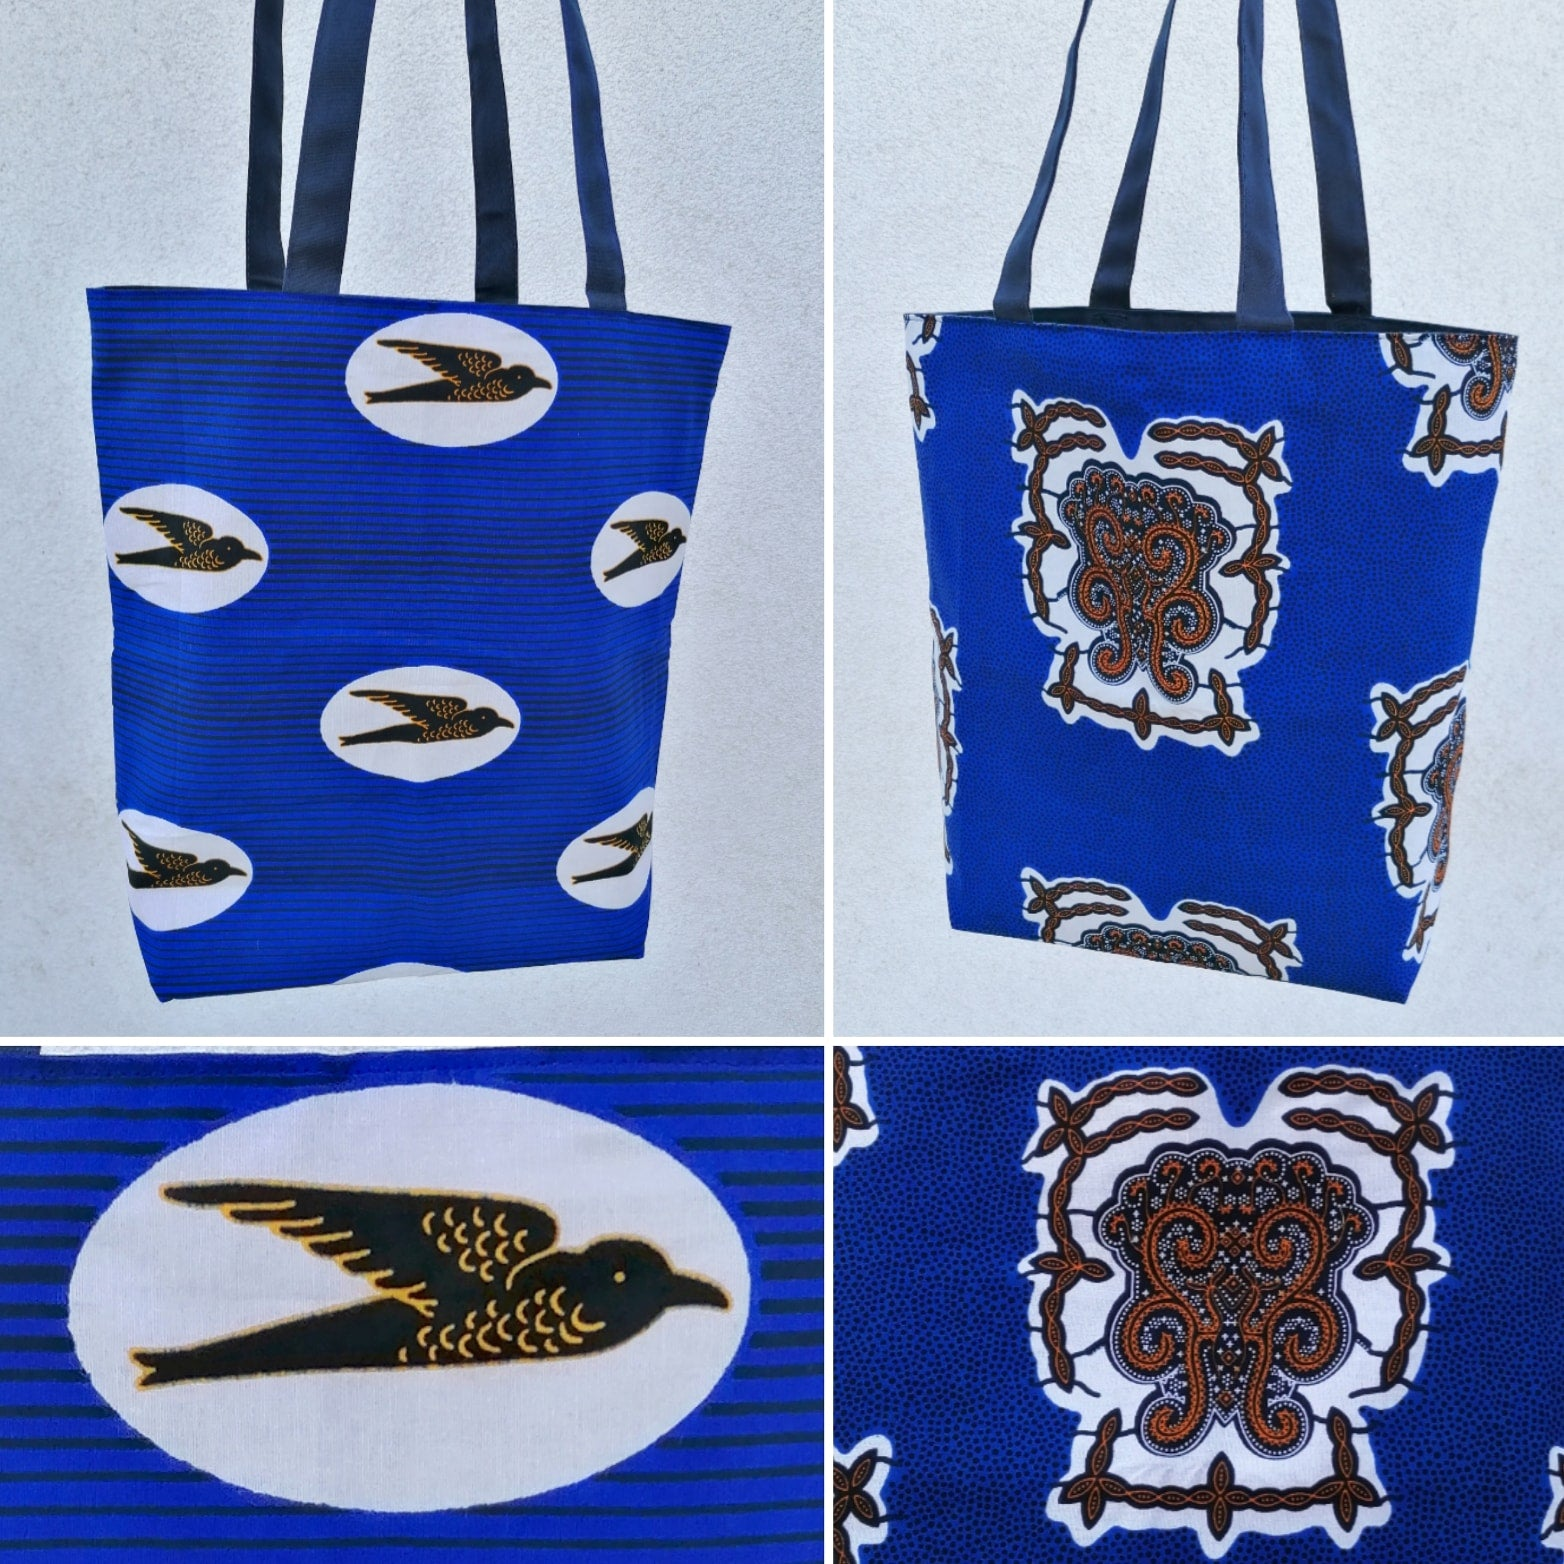 Colourful Shopping Bag - 2 Prints